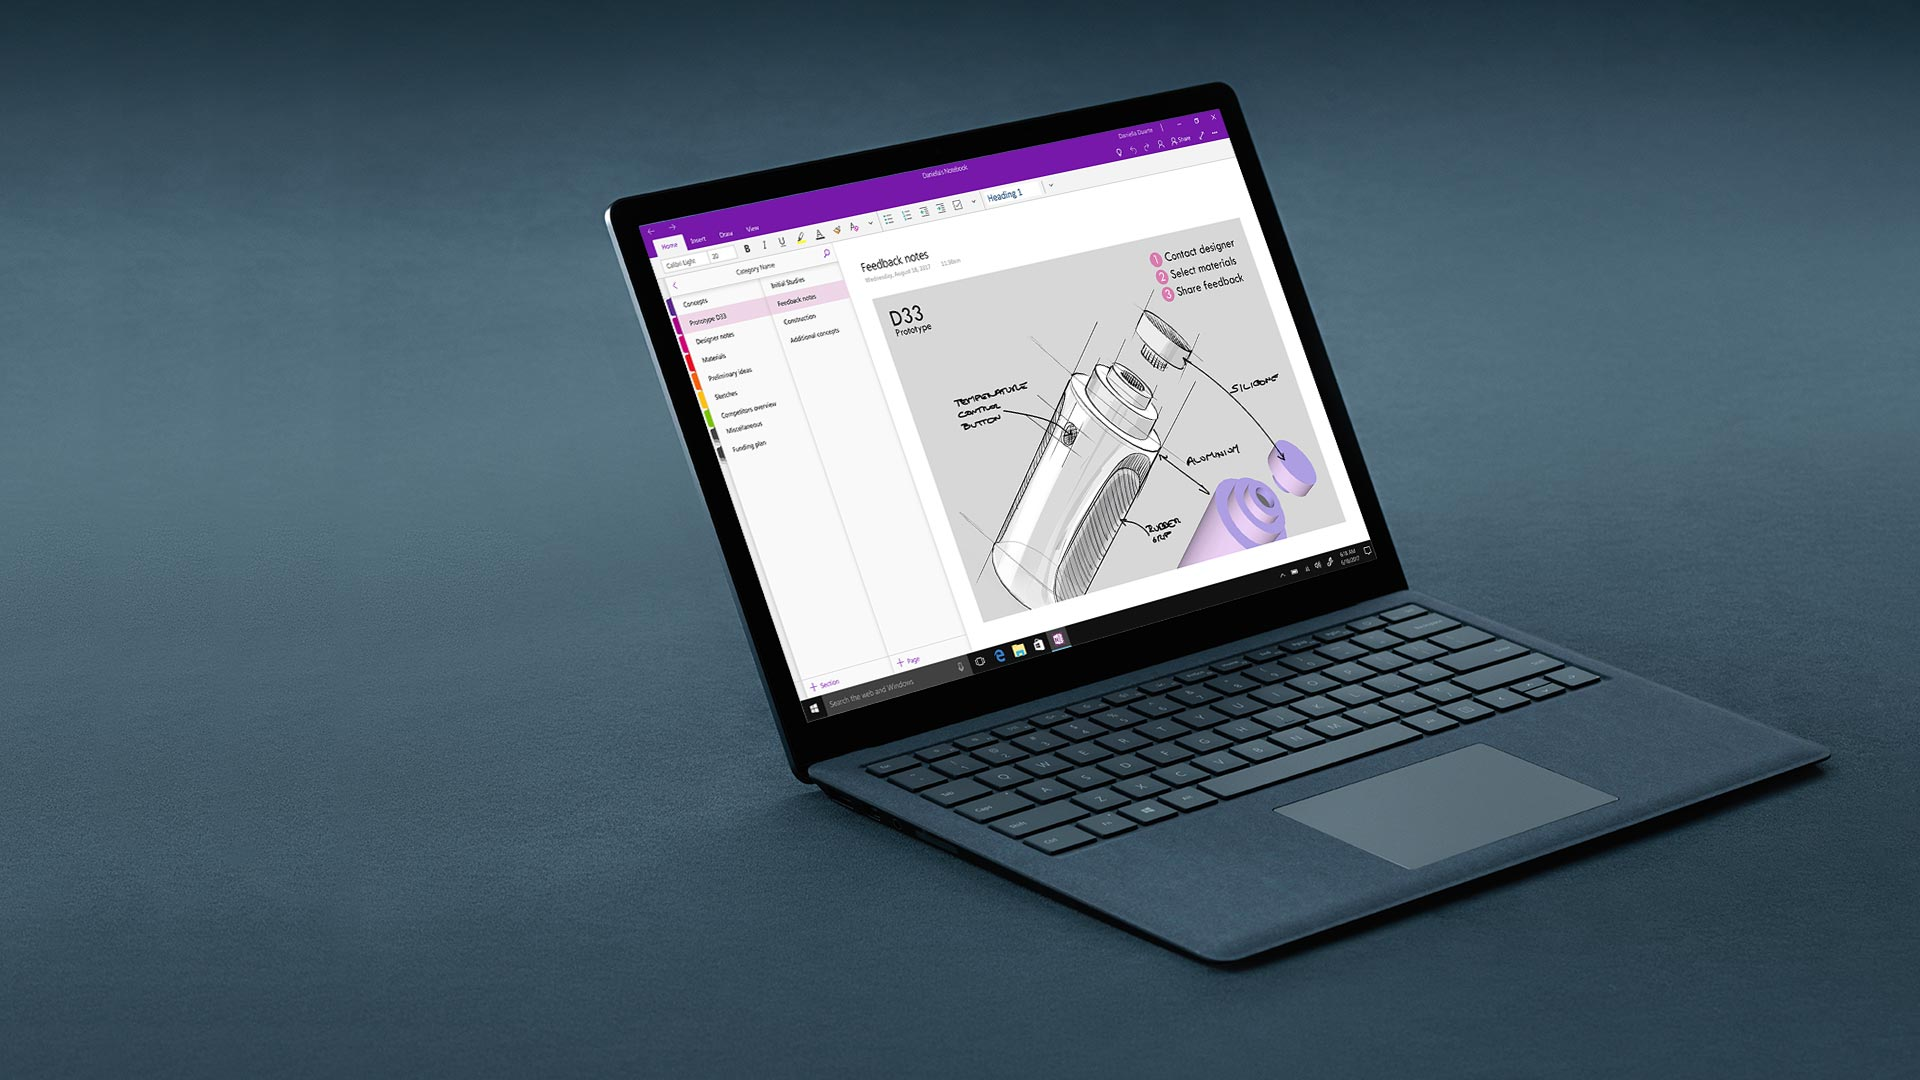 Koboltblå Surface Laptop med One Note-skärm.